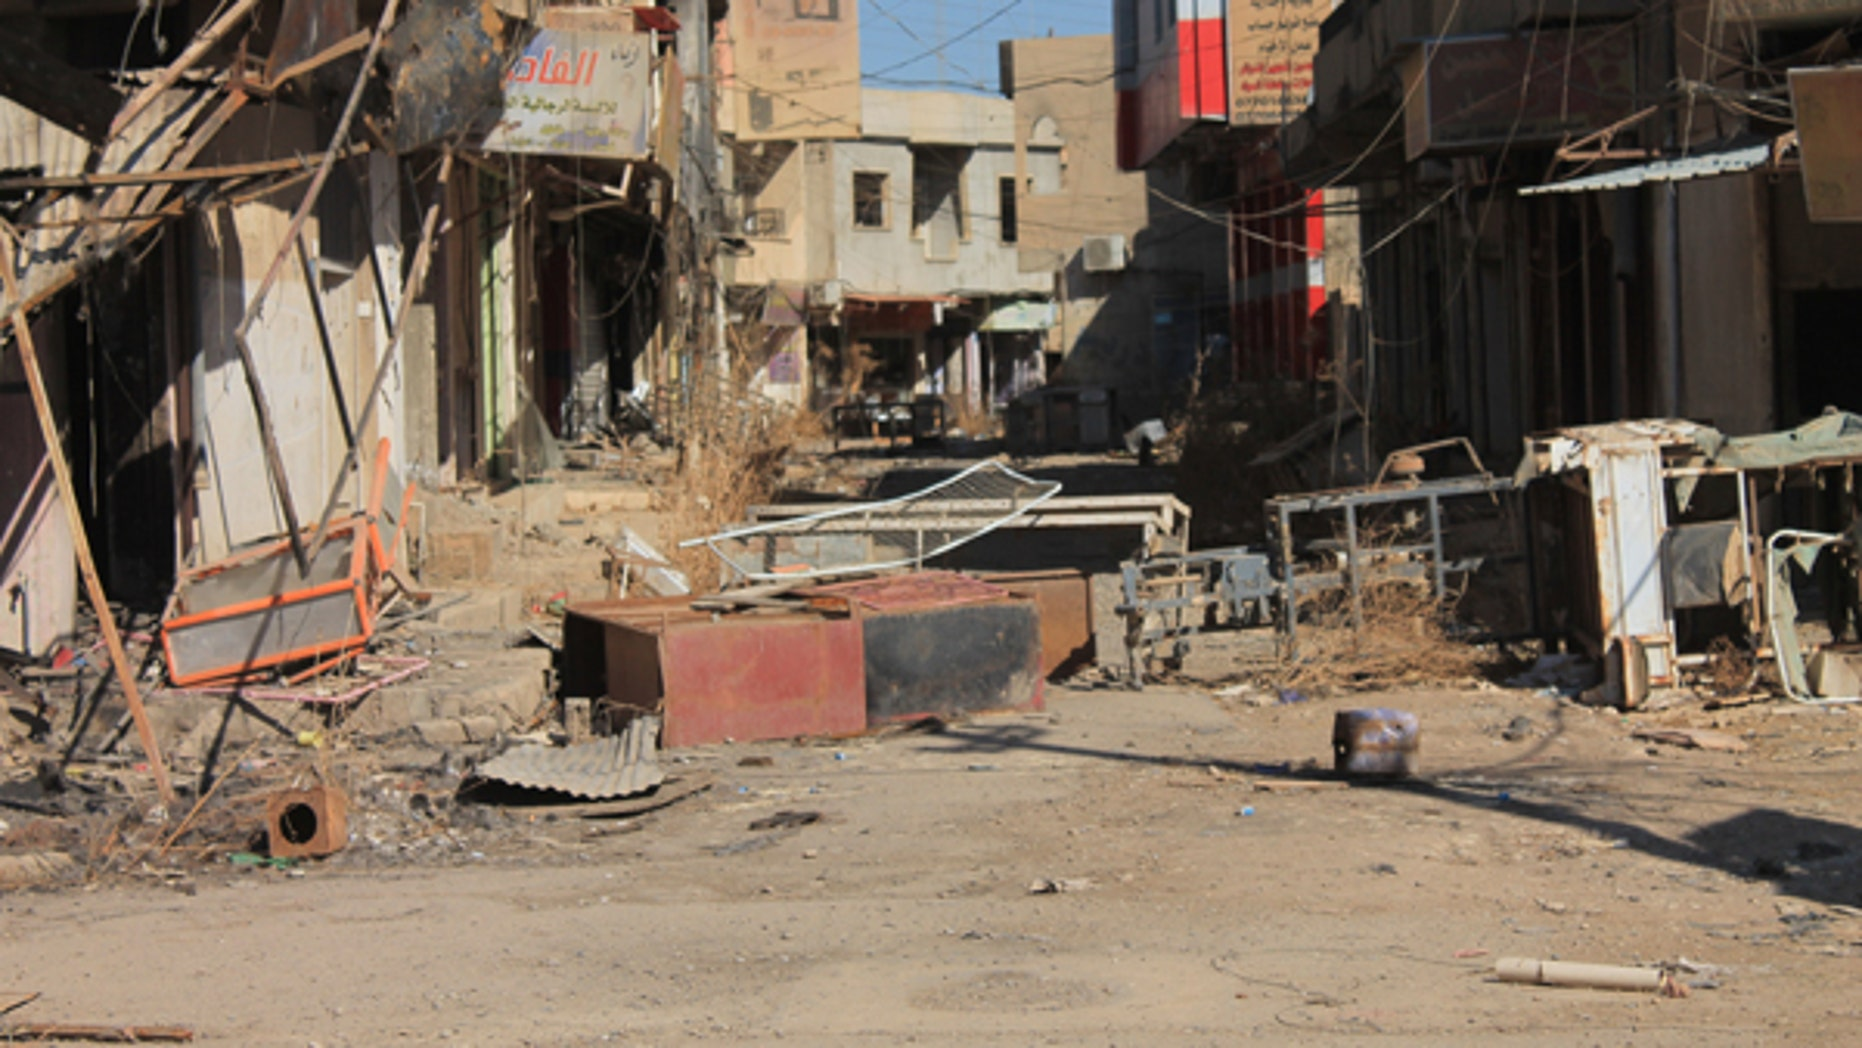 Qaraqosh, Iraq saw part of the destruction made by ISIS of the Christian villages in the Nineveh Plain.